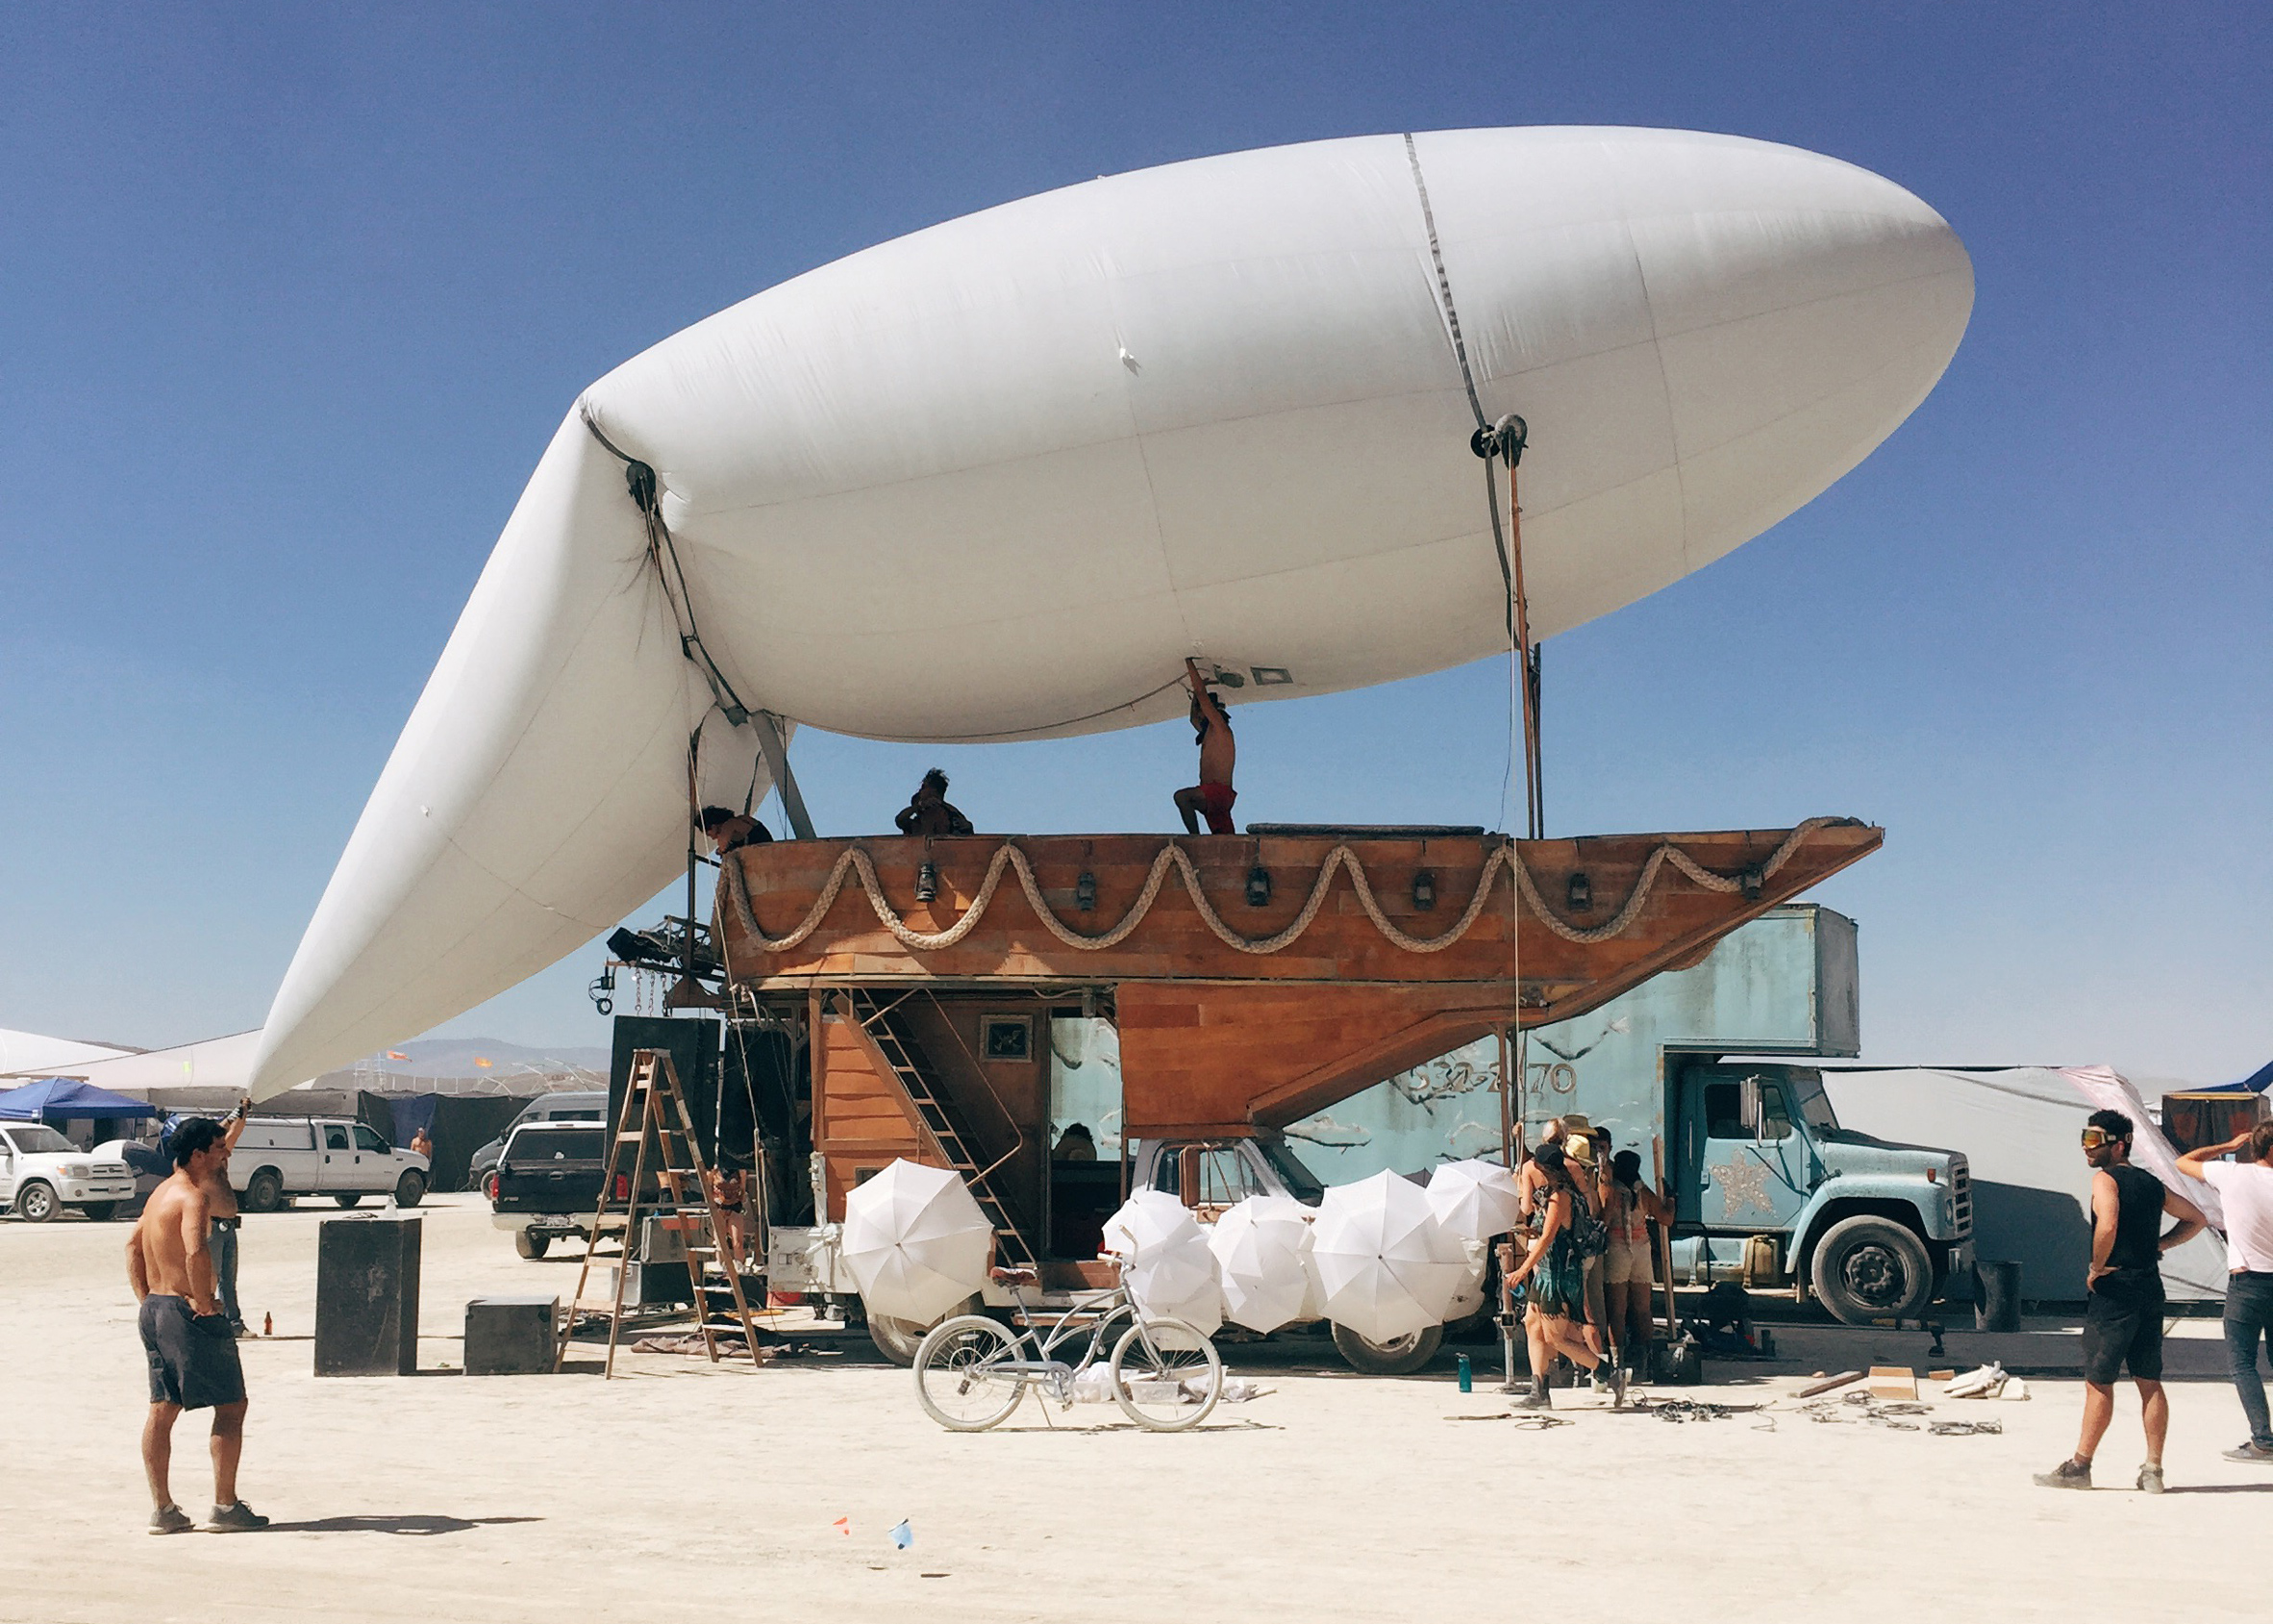 Burning Man 2016